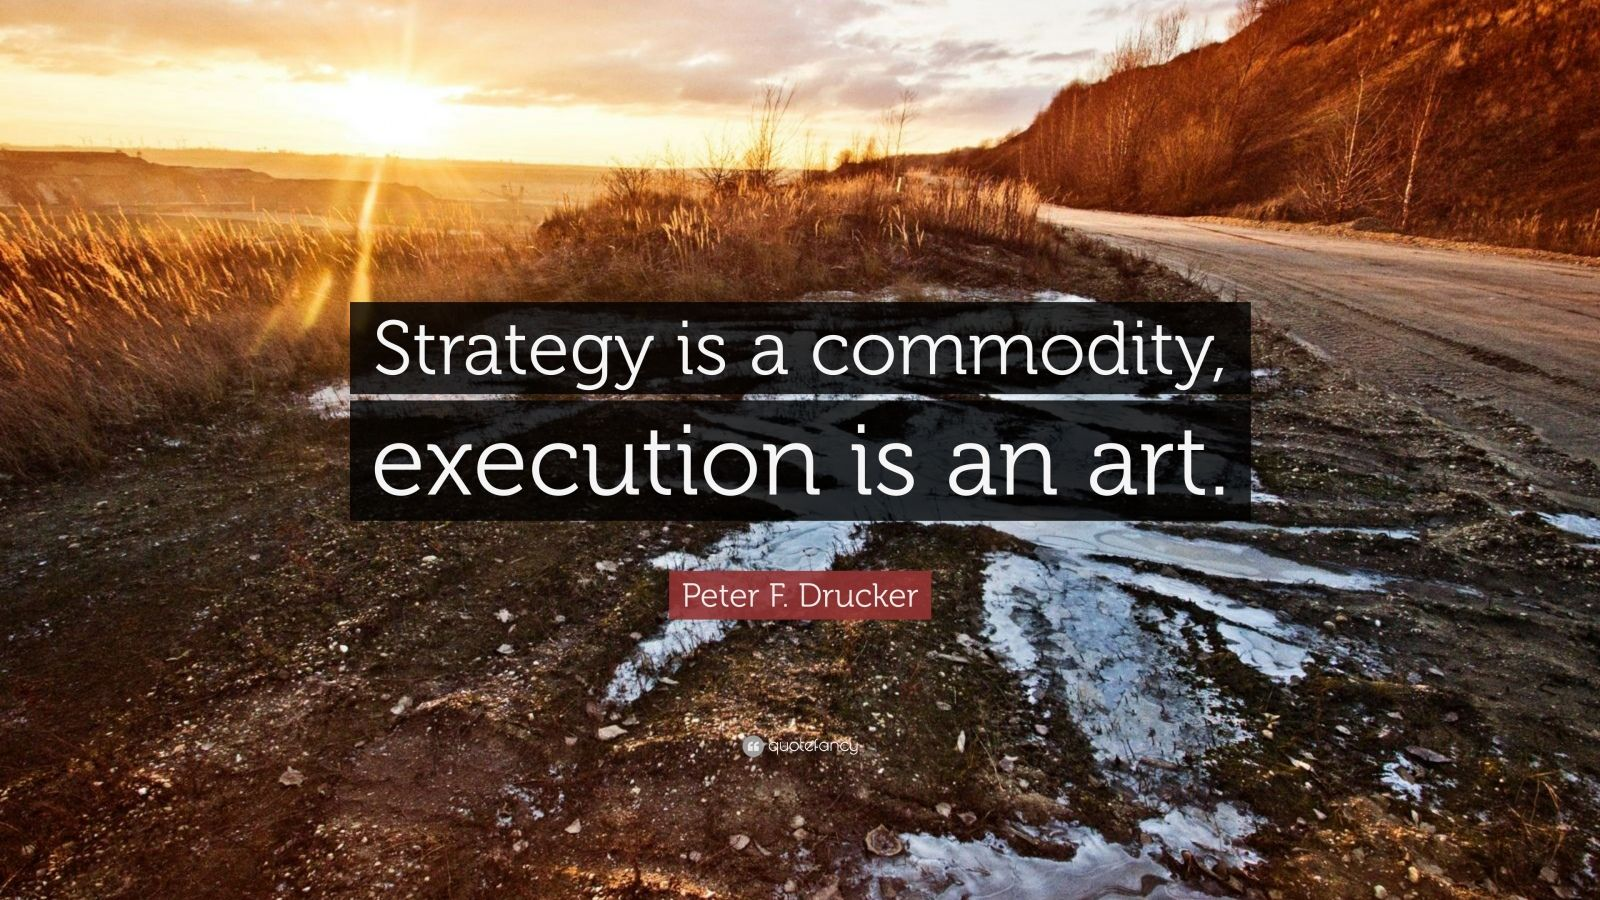 """Peter F. Drucker Quote: """"Strategy is a commodity, execution is an art."""""""